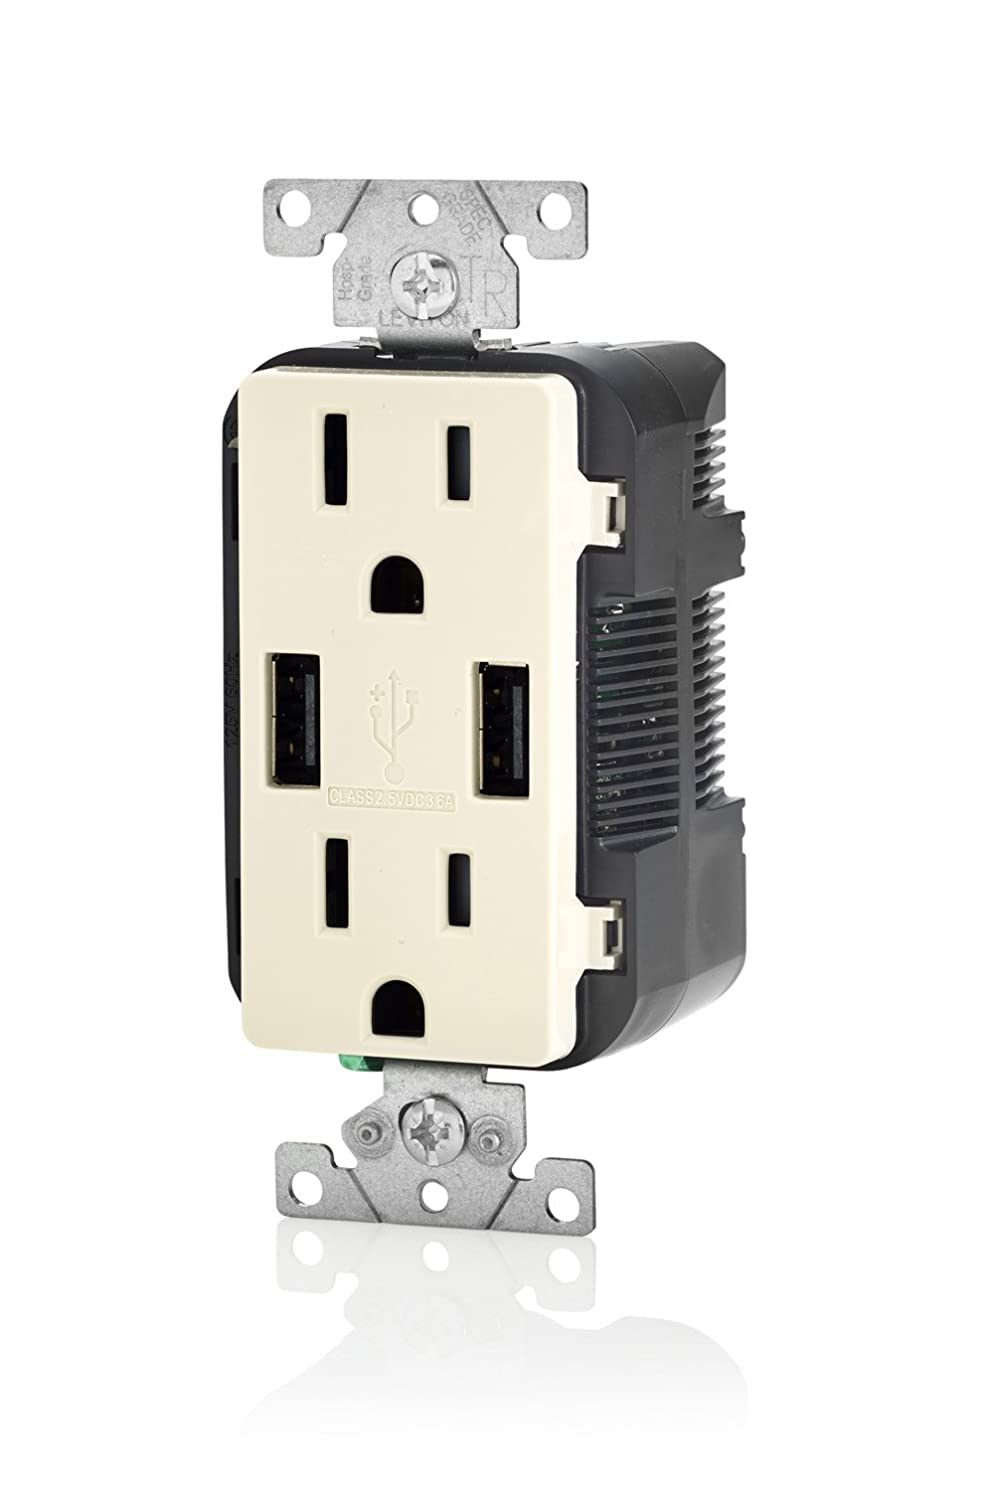 Leviton T5632 E 15 Amp Usb Charger Tamper Resistant Duplex 120 Volt Plug Wiring Diagram With Multiple Plugs Receptacle Black